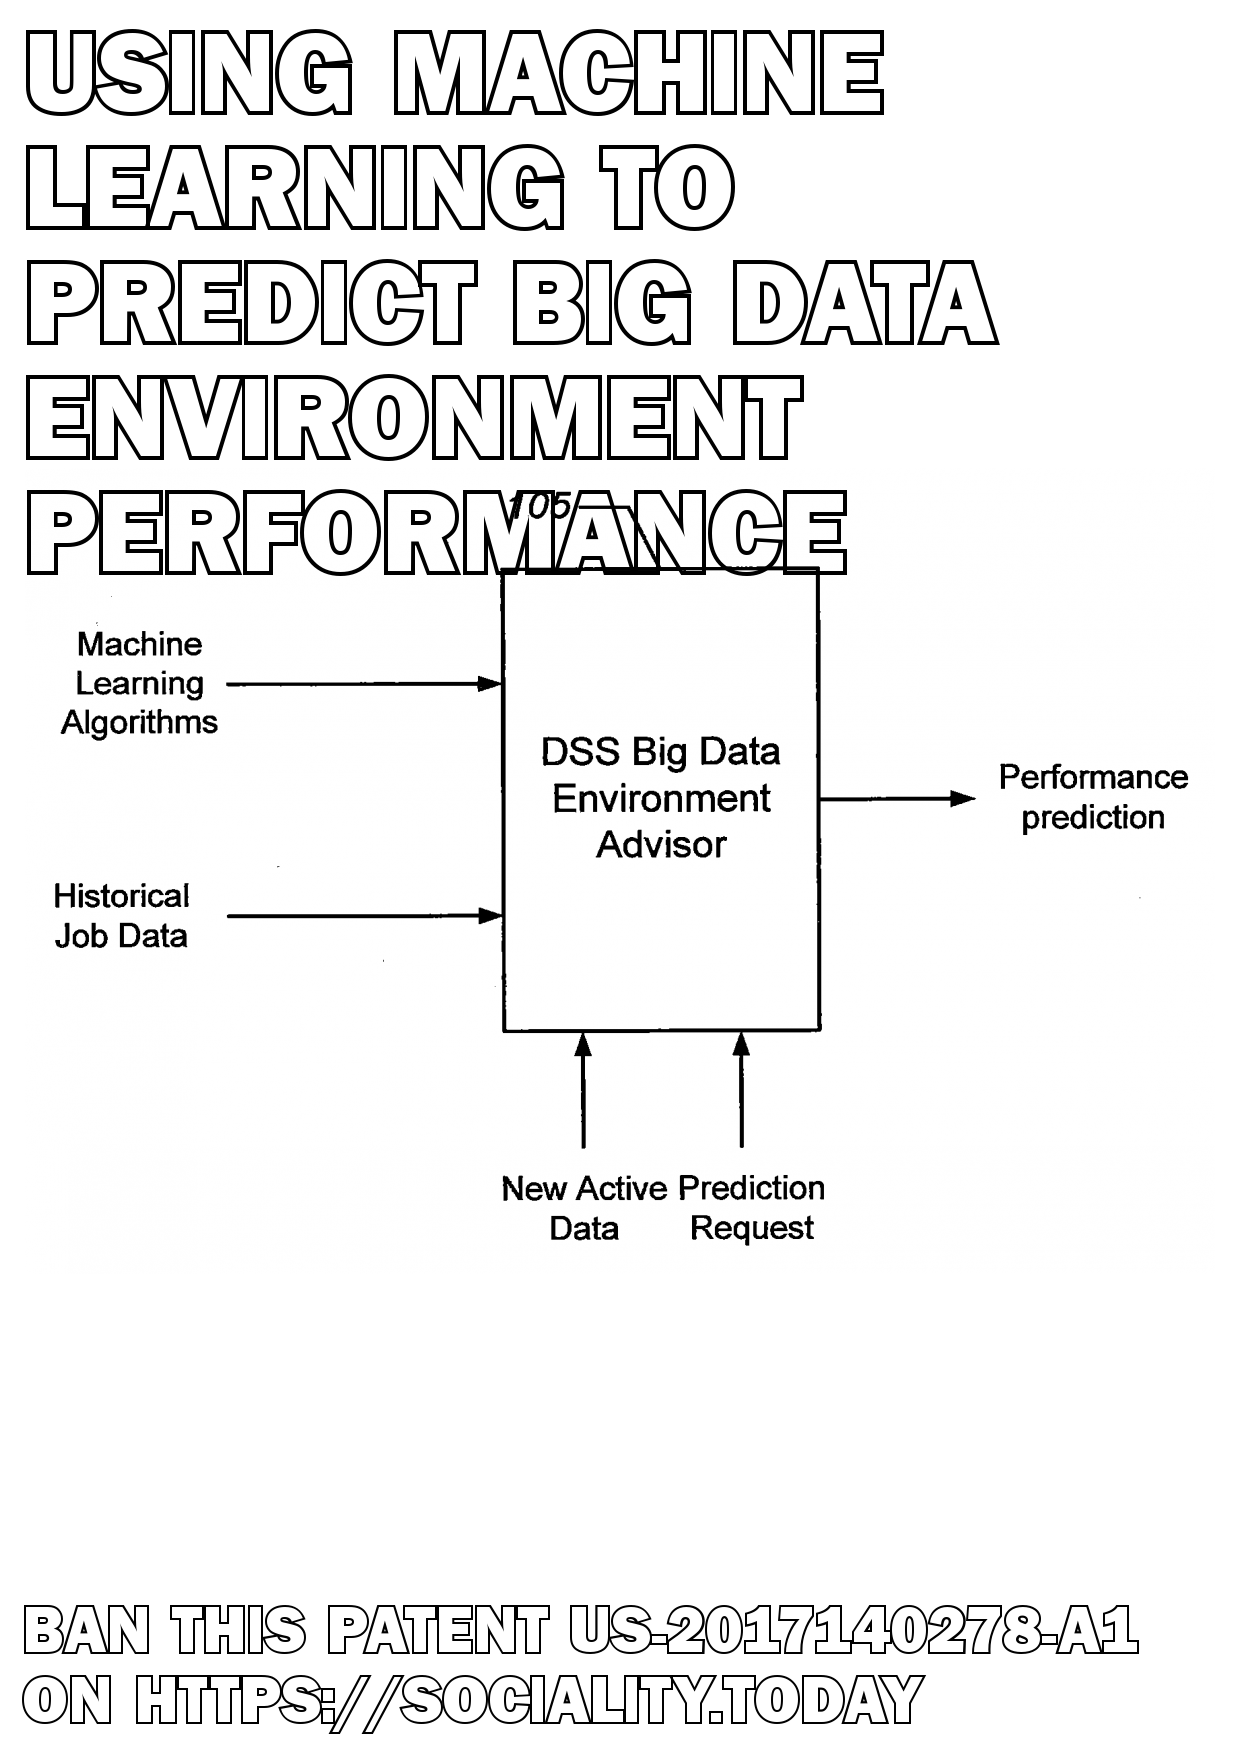 Using machine learning to predict big data environment performance  - US-2017140278-A1